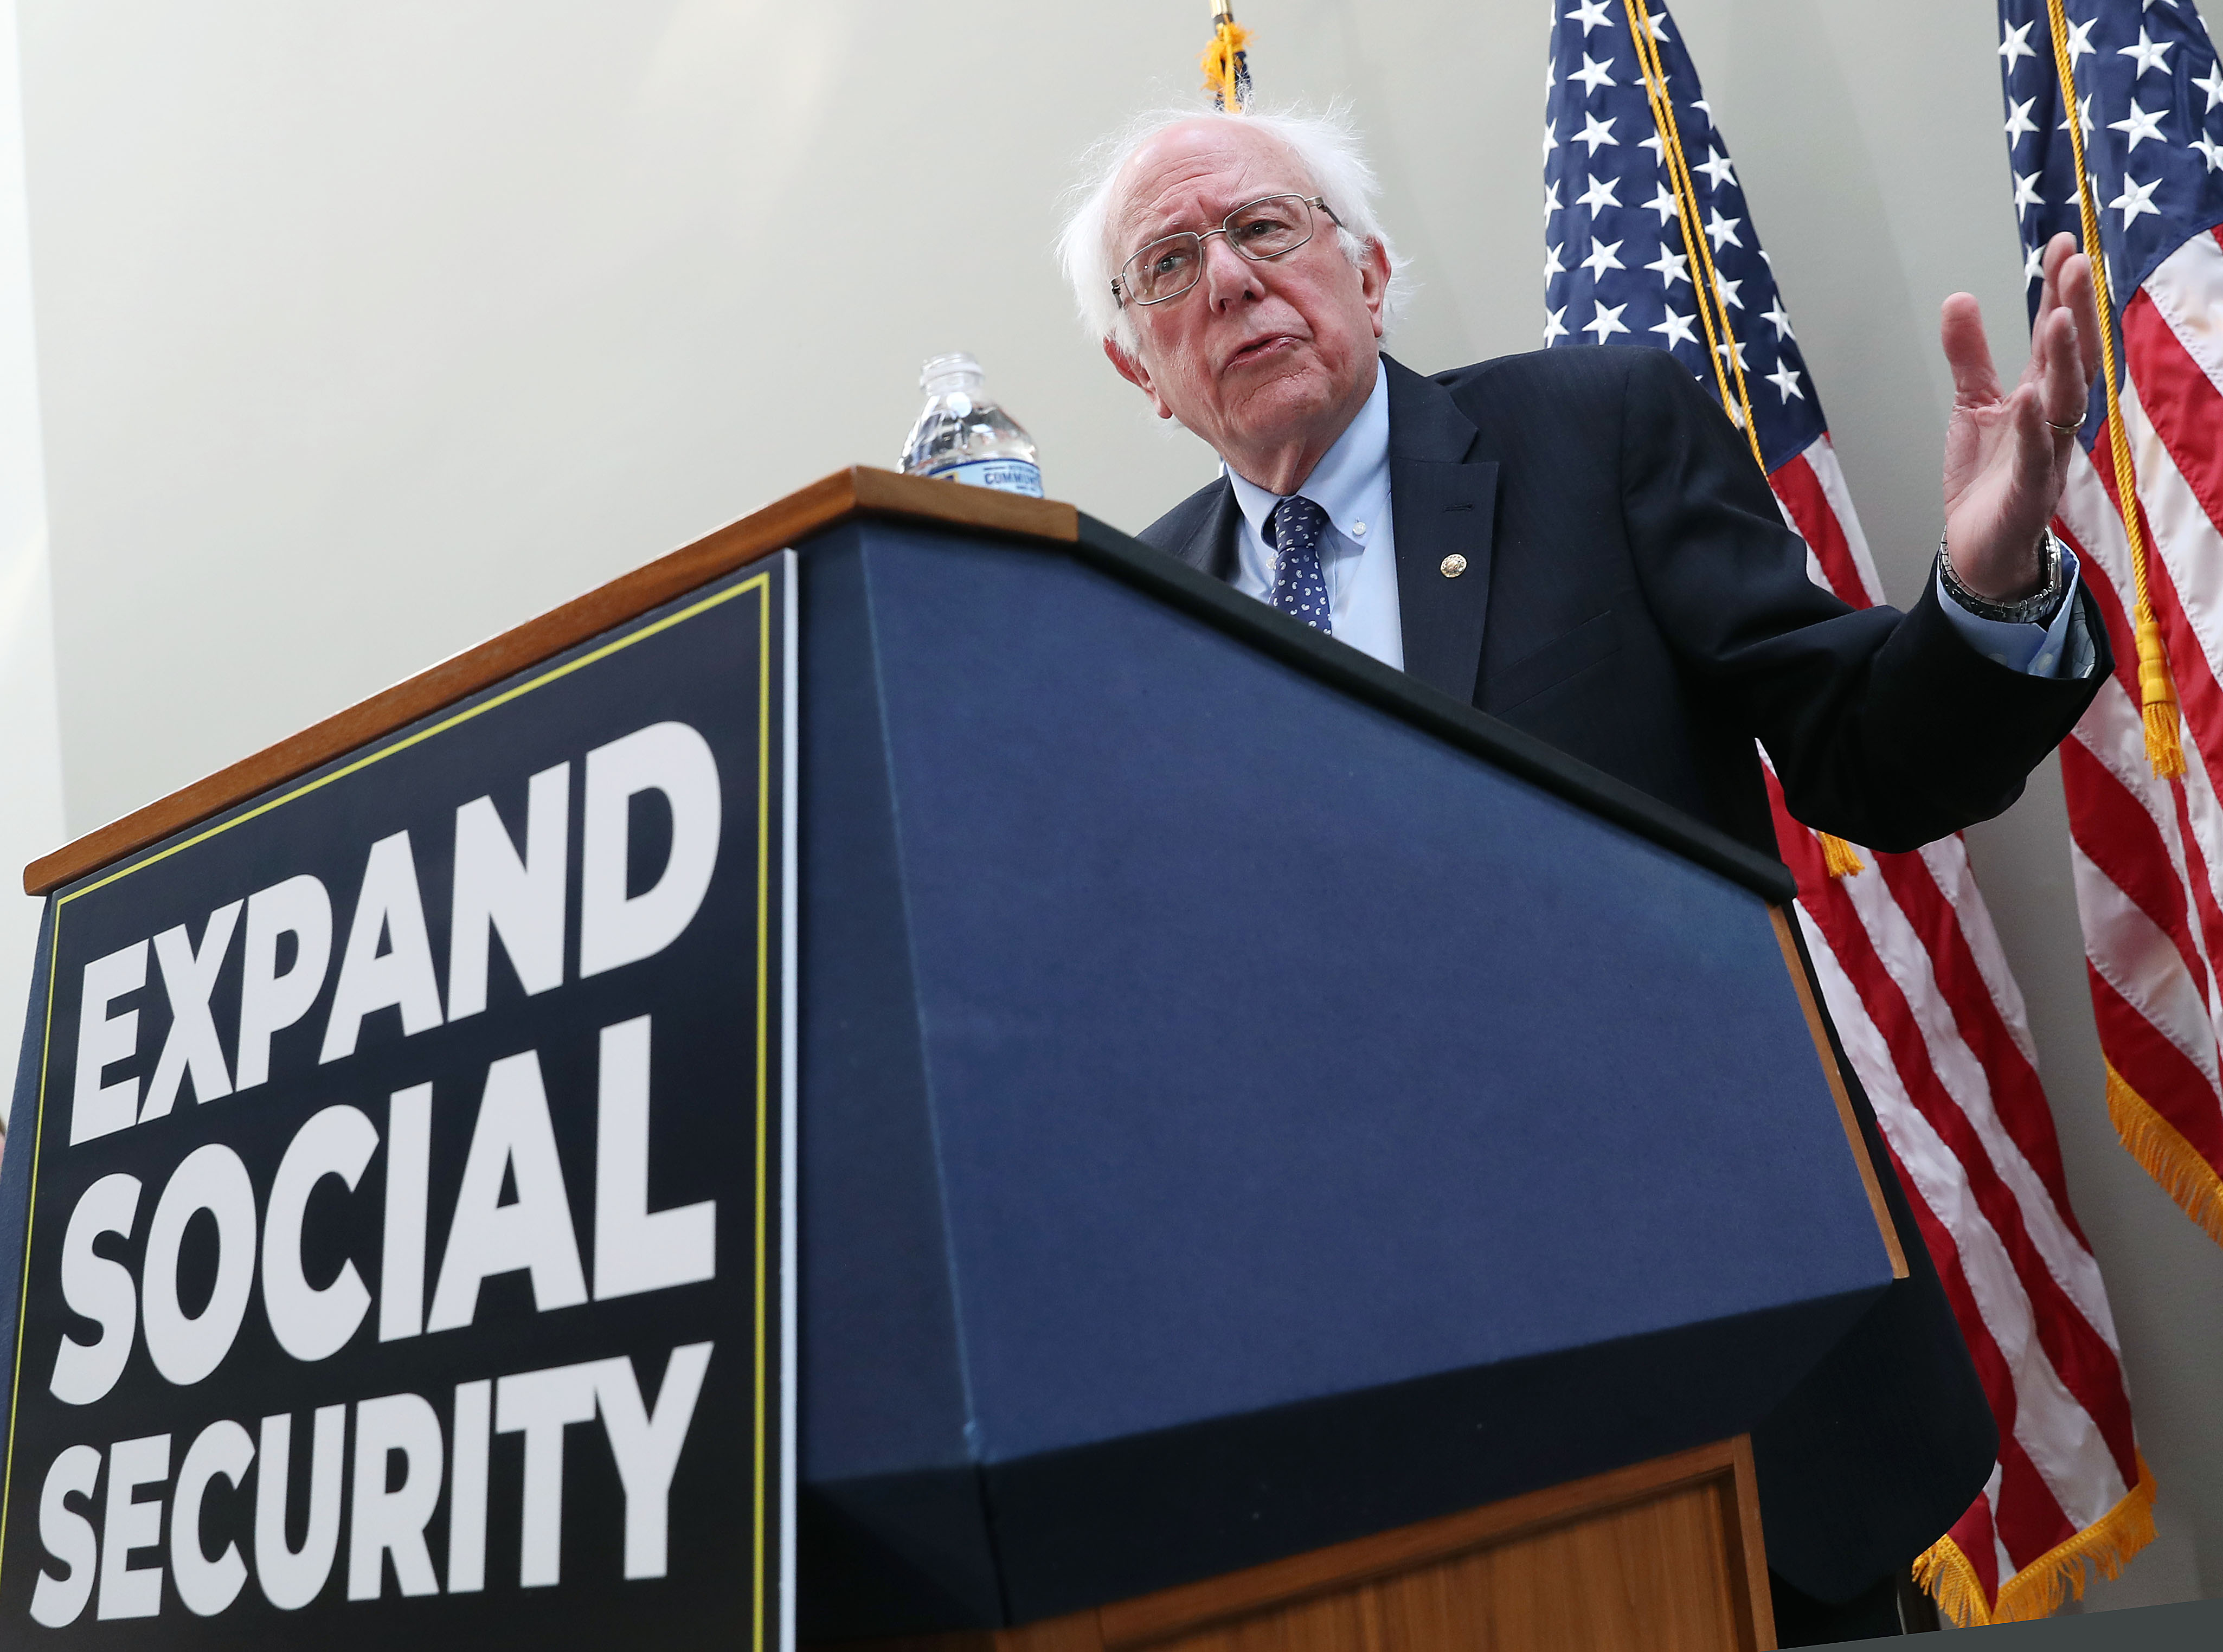 Sen. Bernie Sanders speaks during a news conference to announce legislation to expand Social Security, on Capitol Hill February 13, 2019 in Washington, DC. (Photo by Mark Wilson/Getty Images)